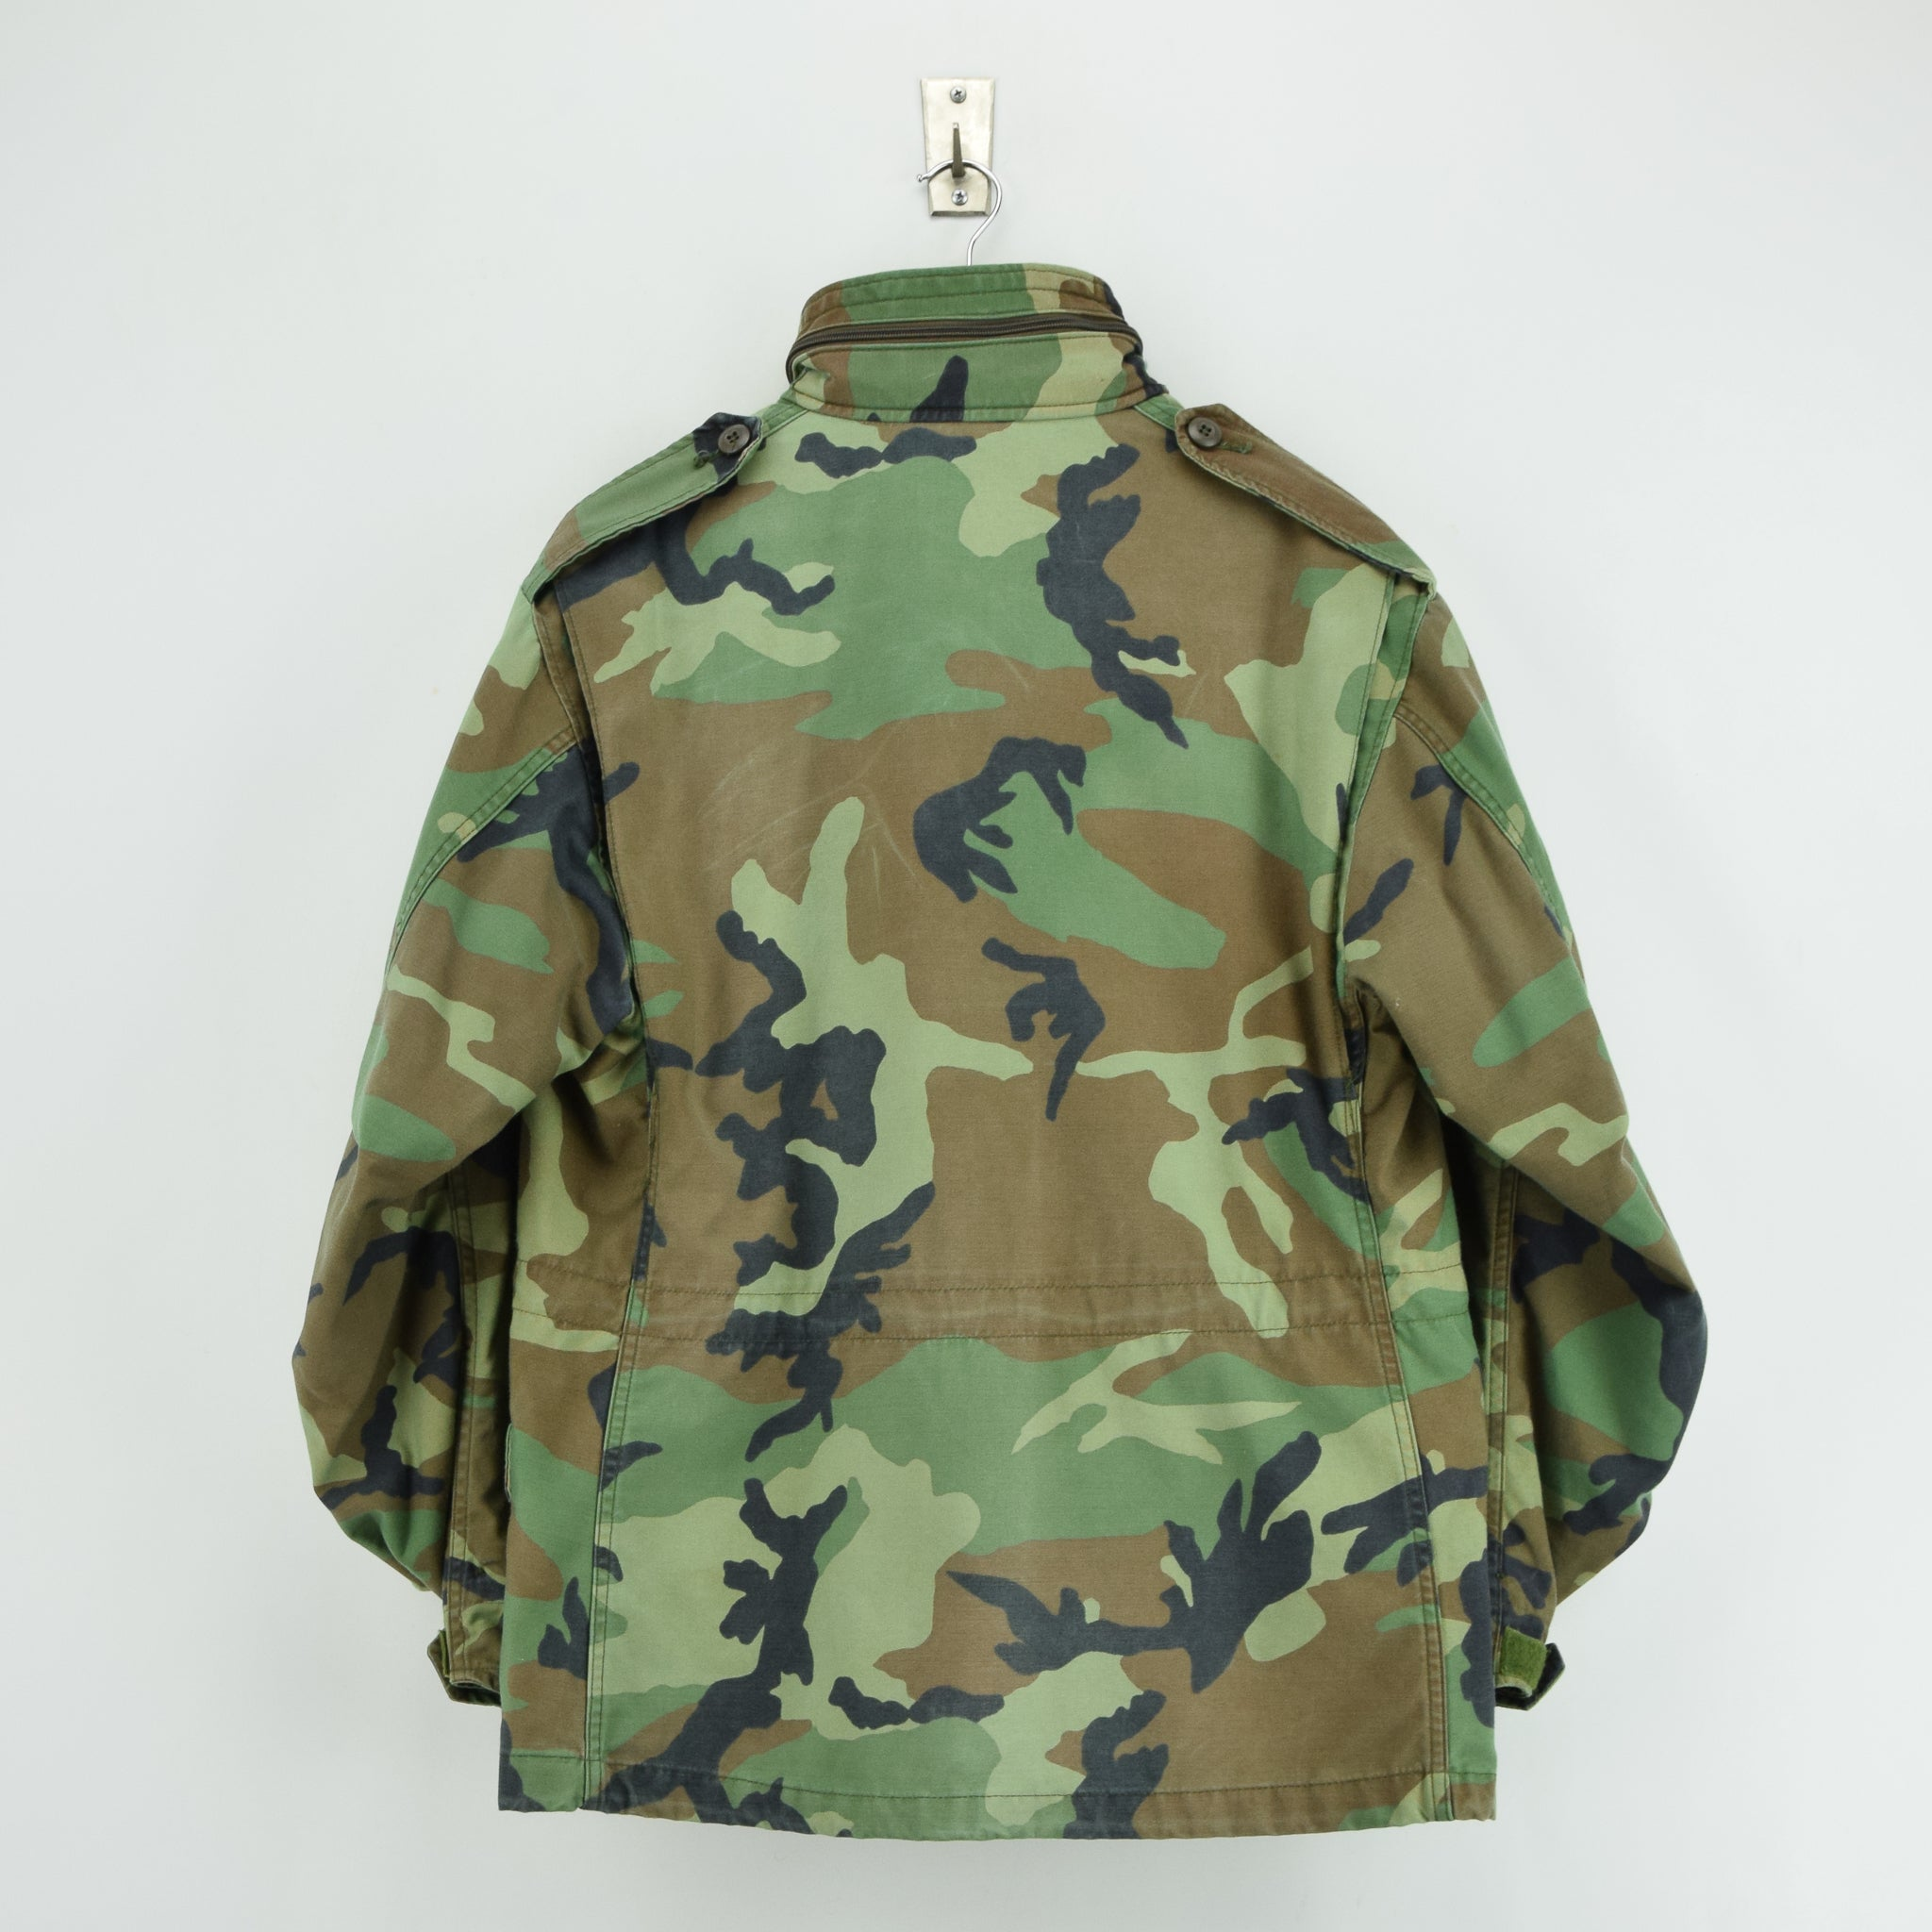 Vintage 90s M-65 Woodland Camouflage Field Coat US Army Cotton Military Jacket M back